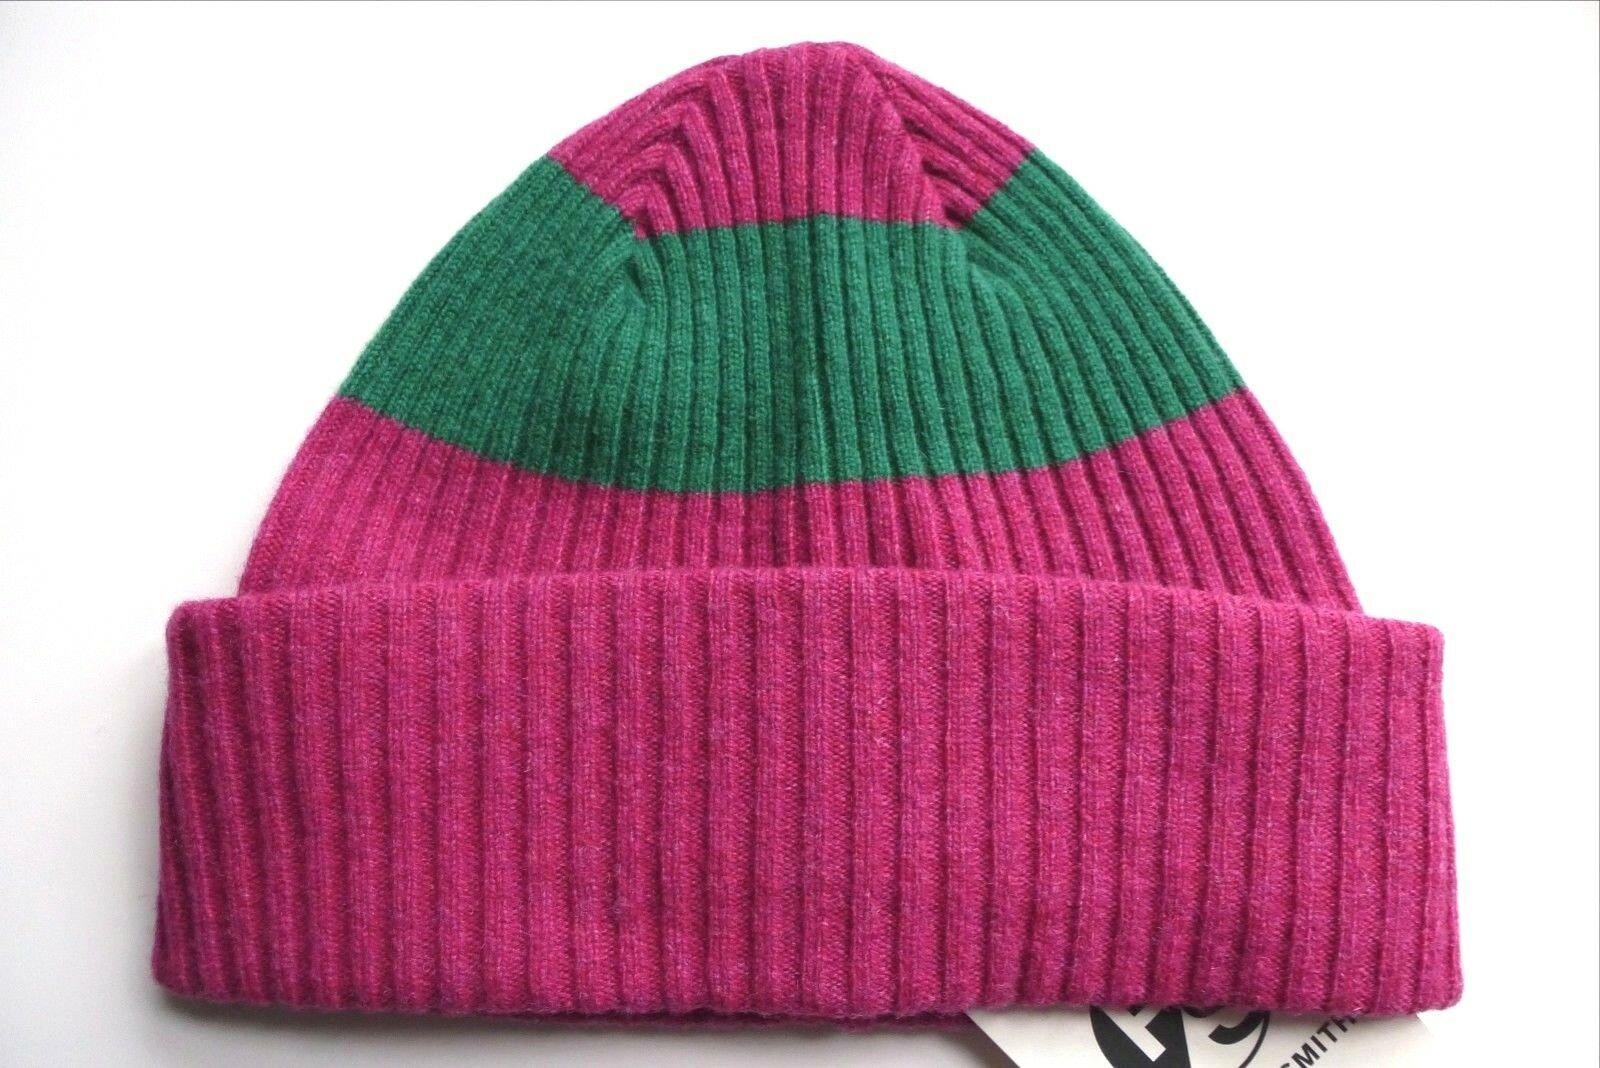 PAUL SMITH 100% Lambswool Deep Pink Green Cuff BEANIE Toque  Hat MADE IN SCOTLAND  fast shipping to you